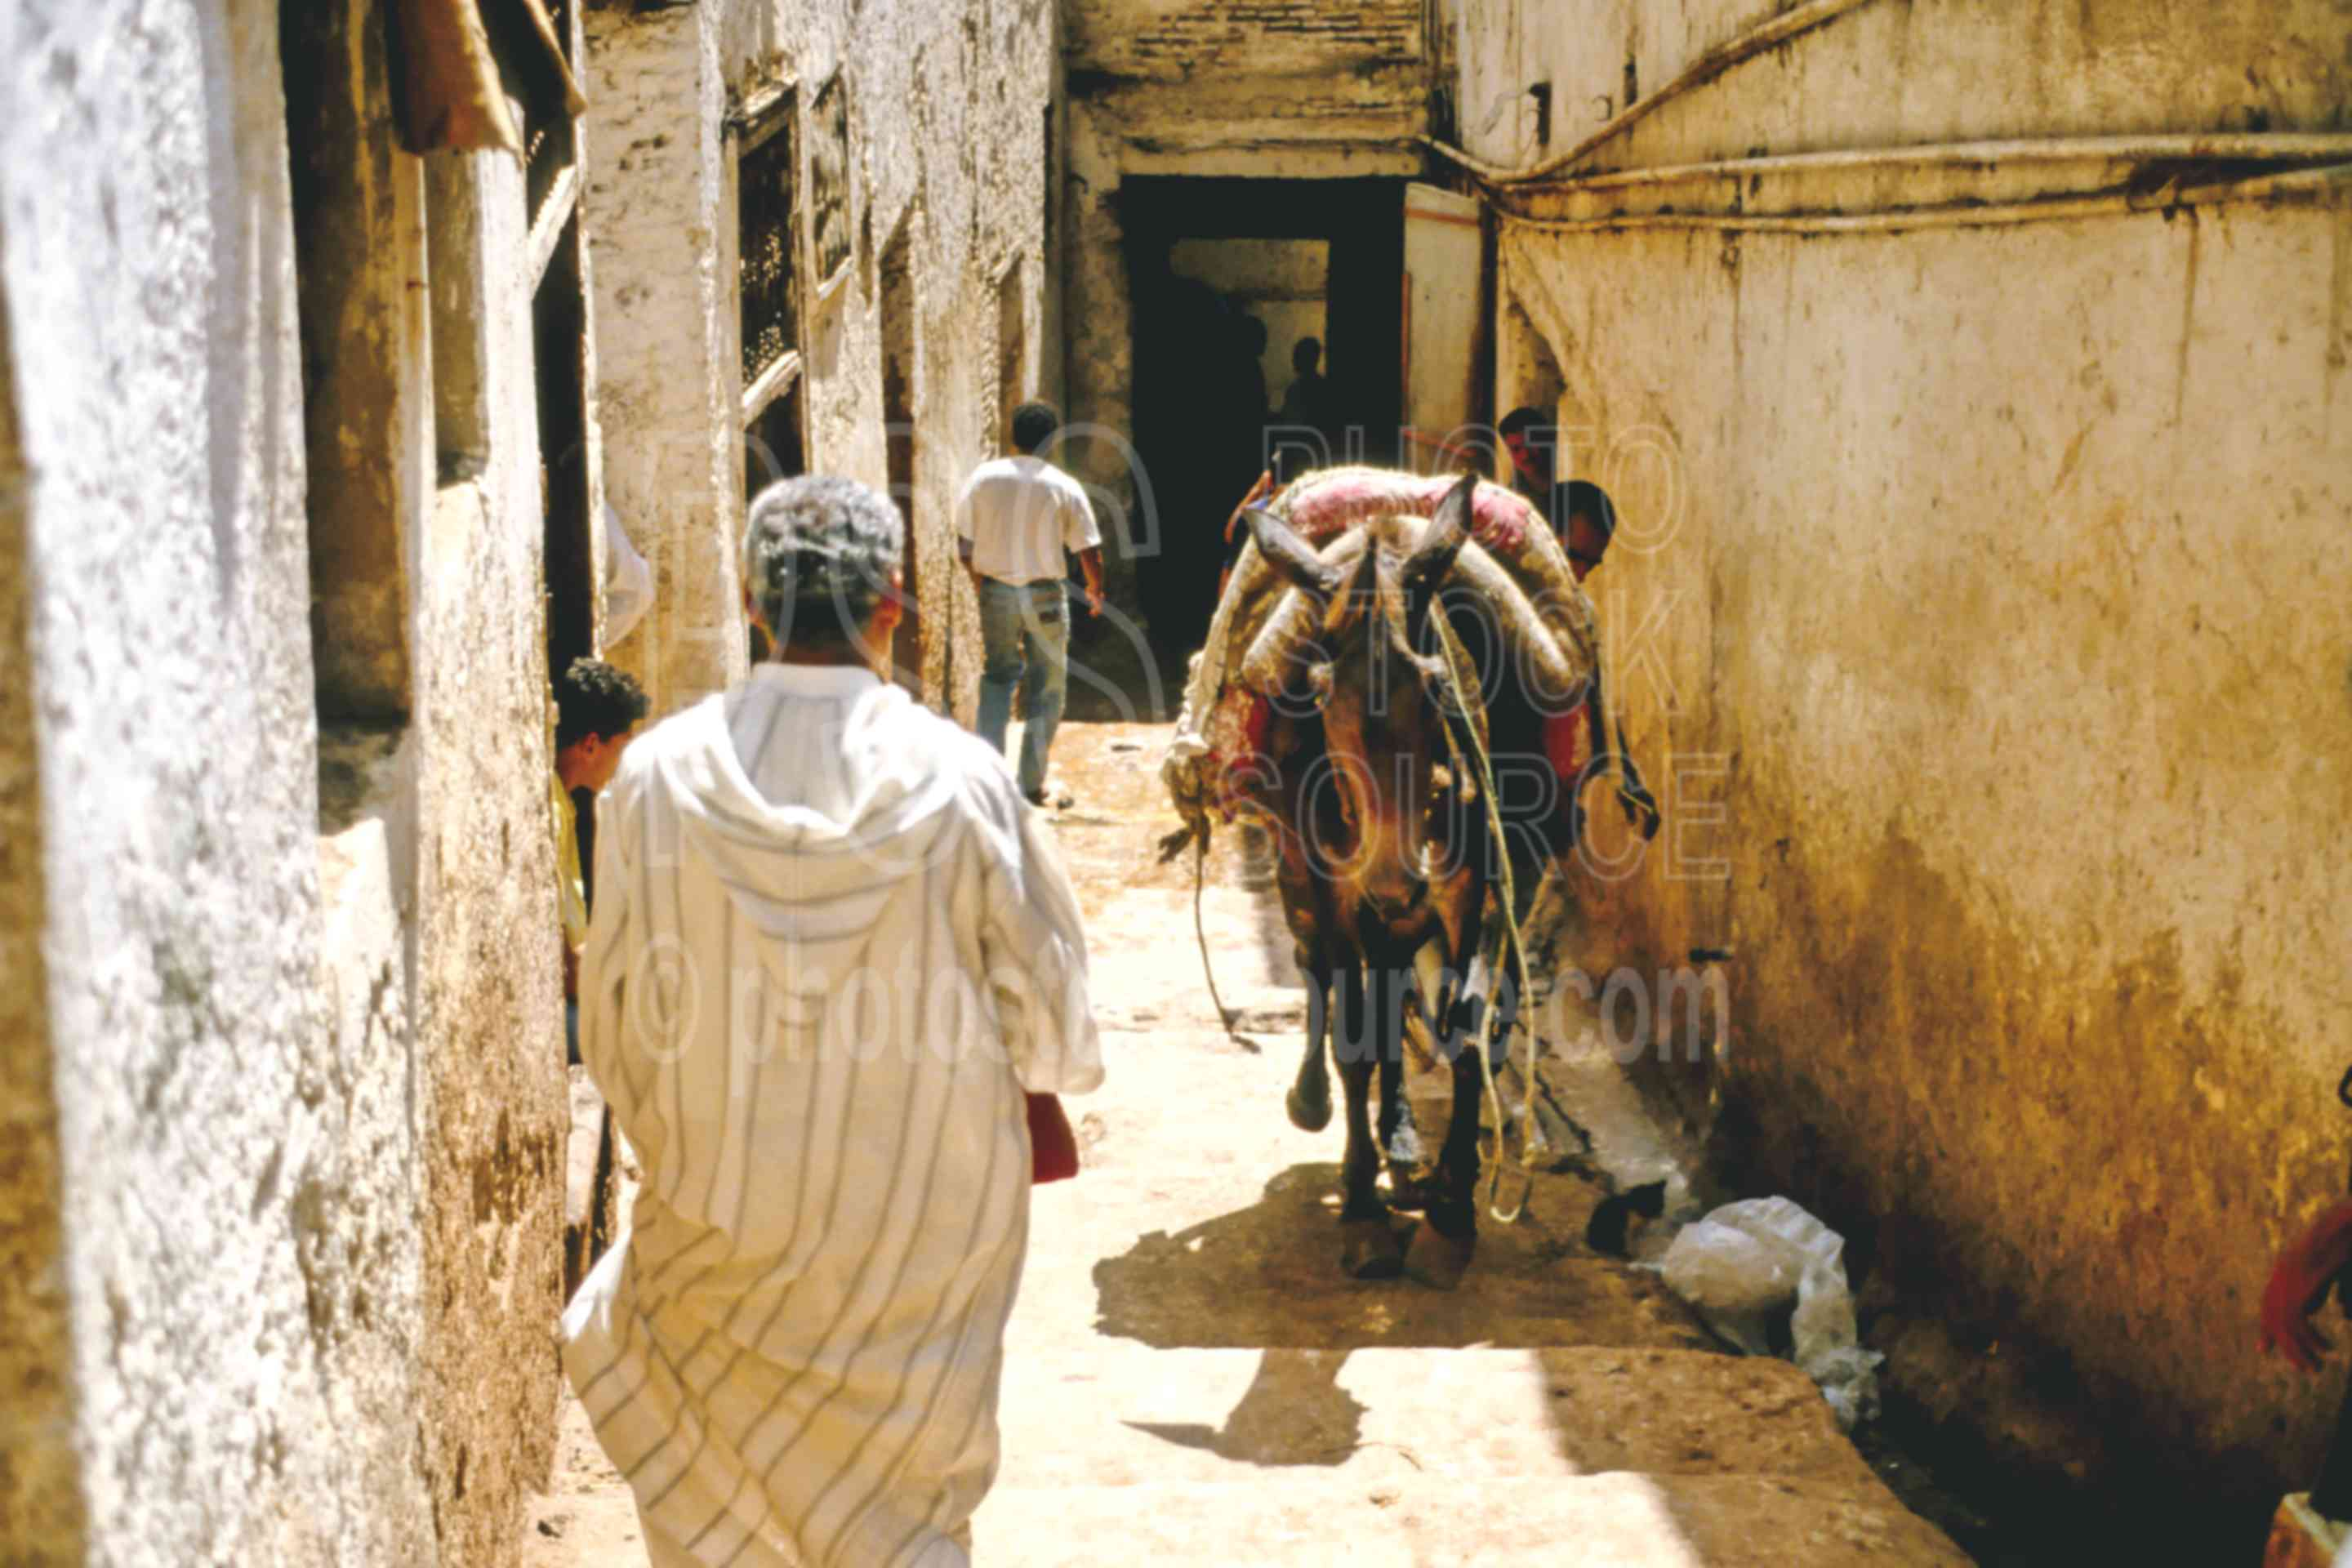 Donkey in Alley,alley,donkey,fezs,market,people,street,morocco markets,animals